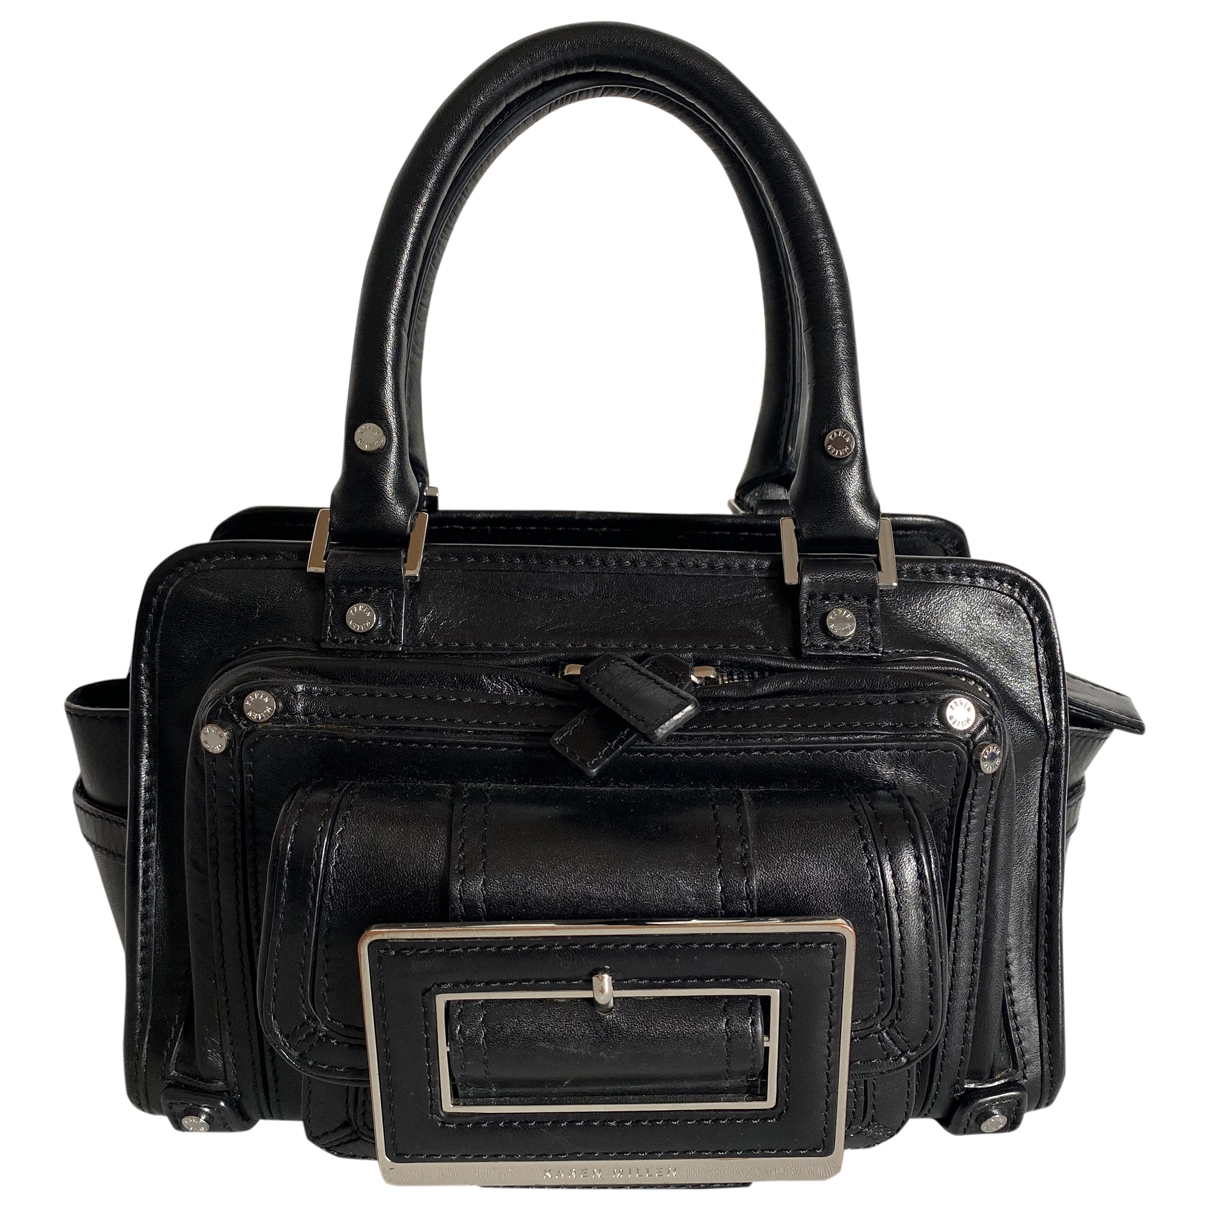 Karen Millen \N Black Leather handbag for Women \N